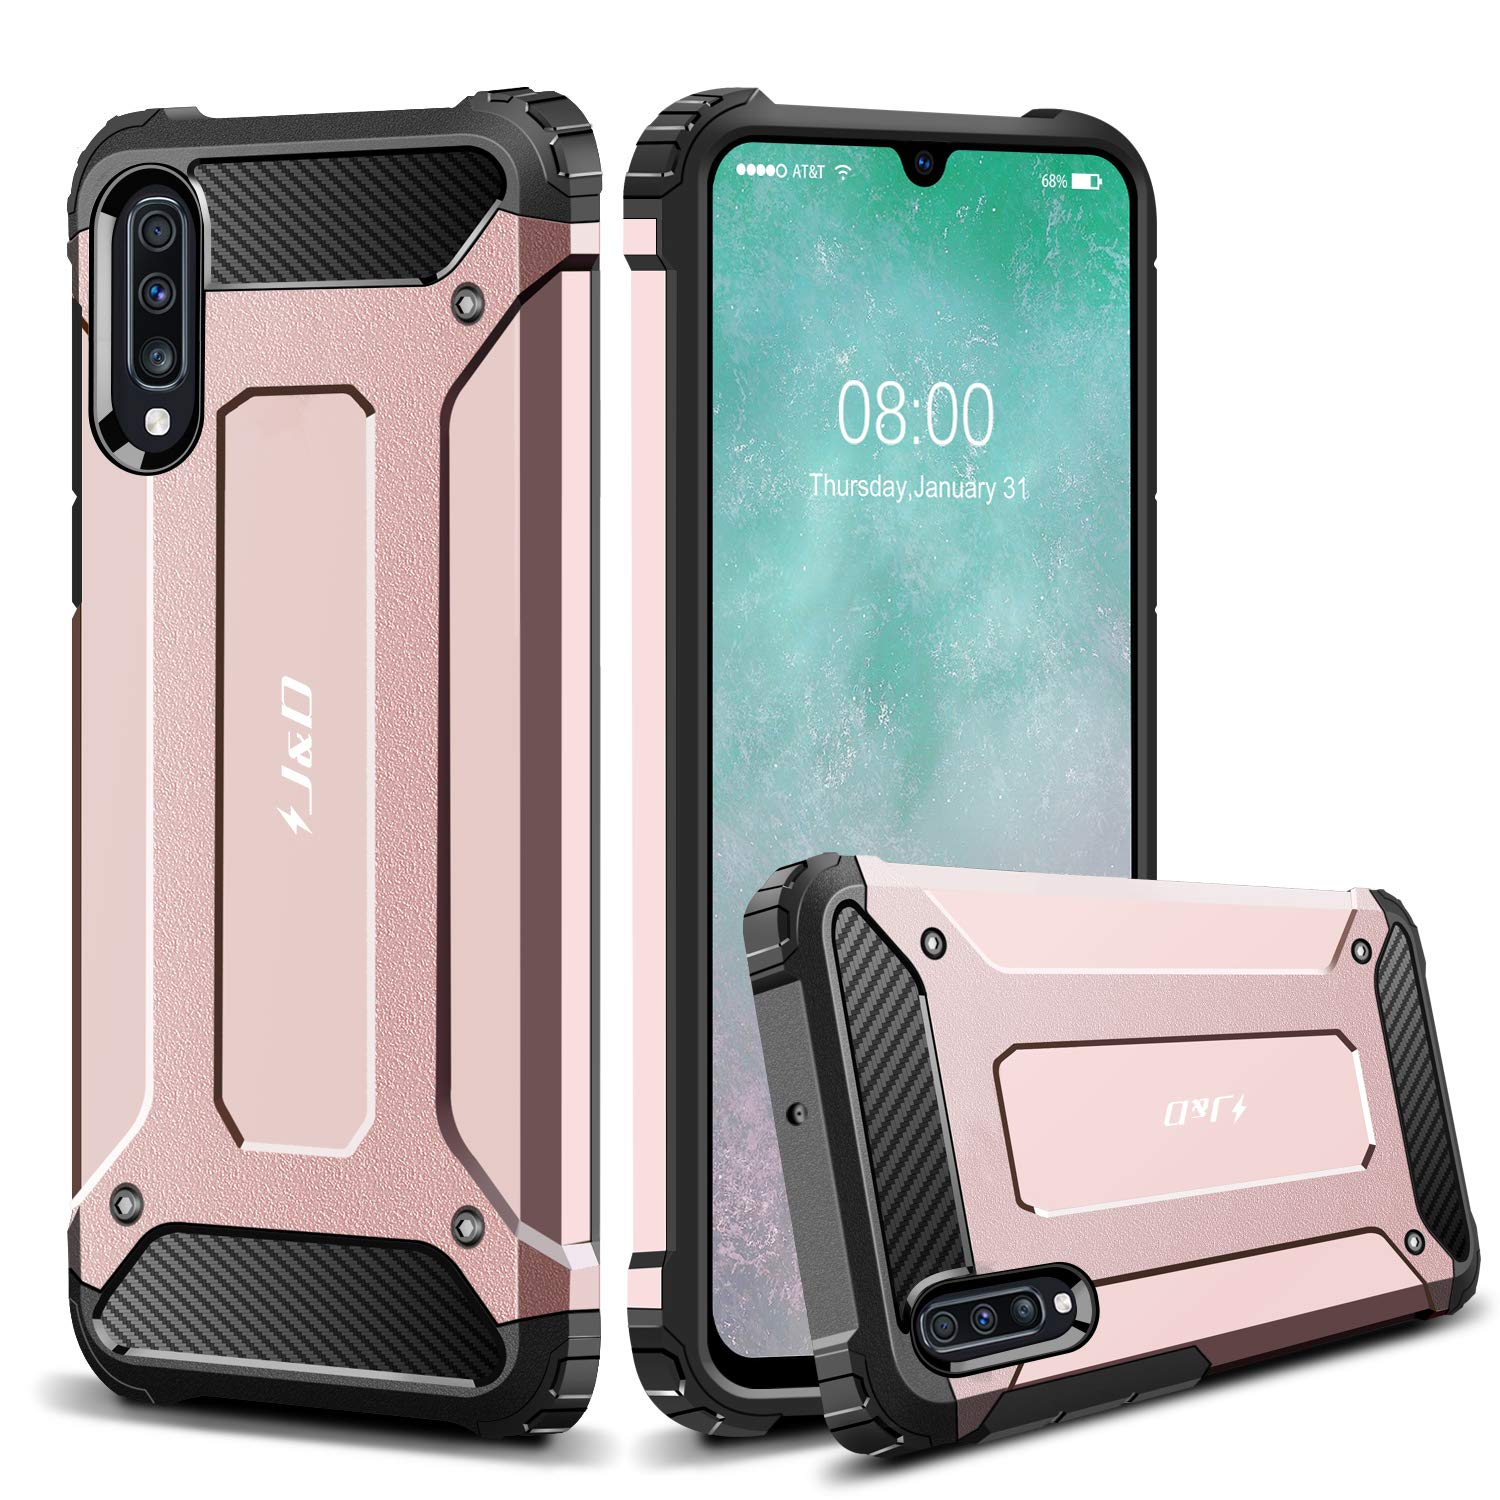 jd-case-rugged-galaxy-a70-press.jpg